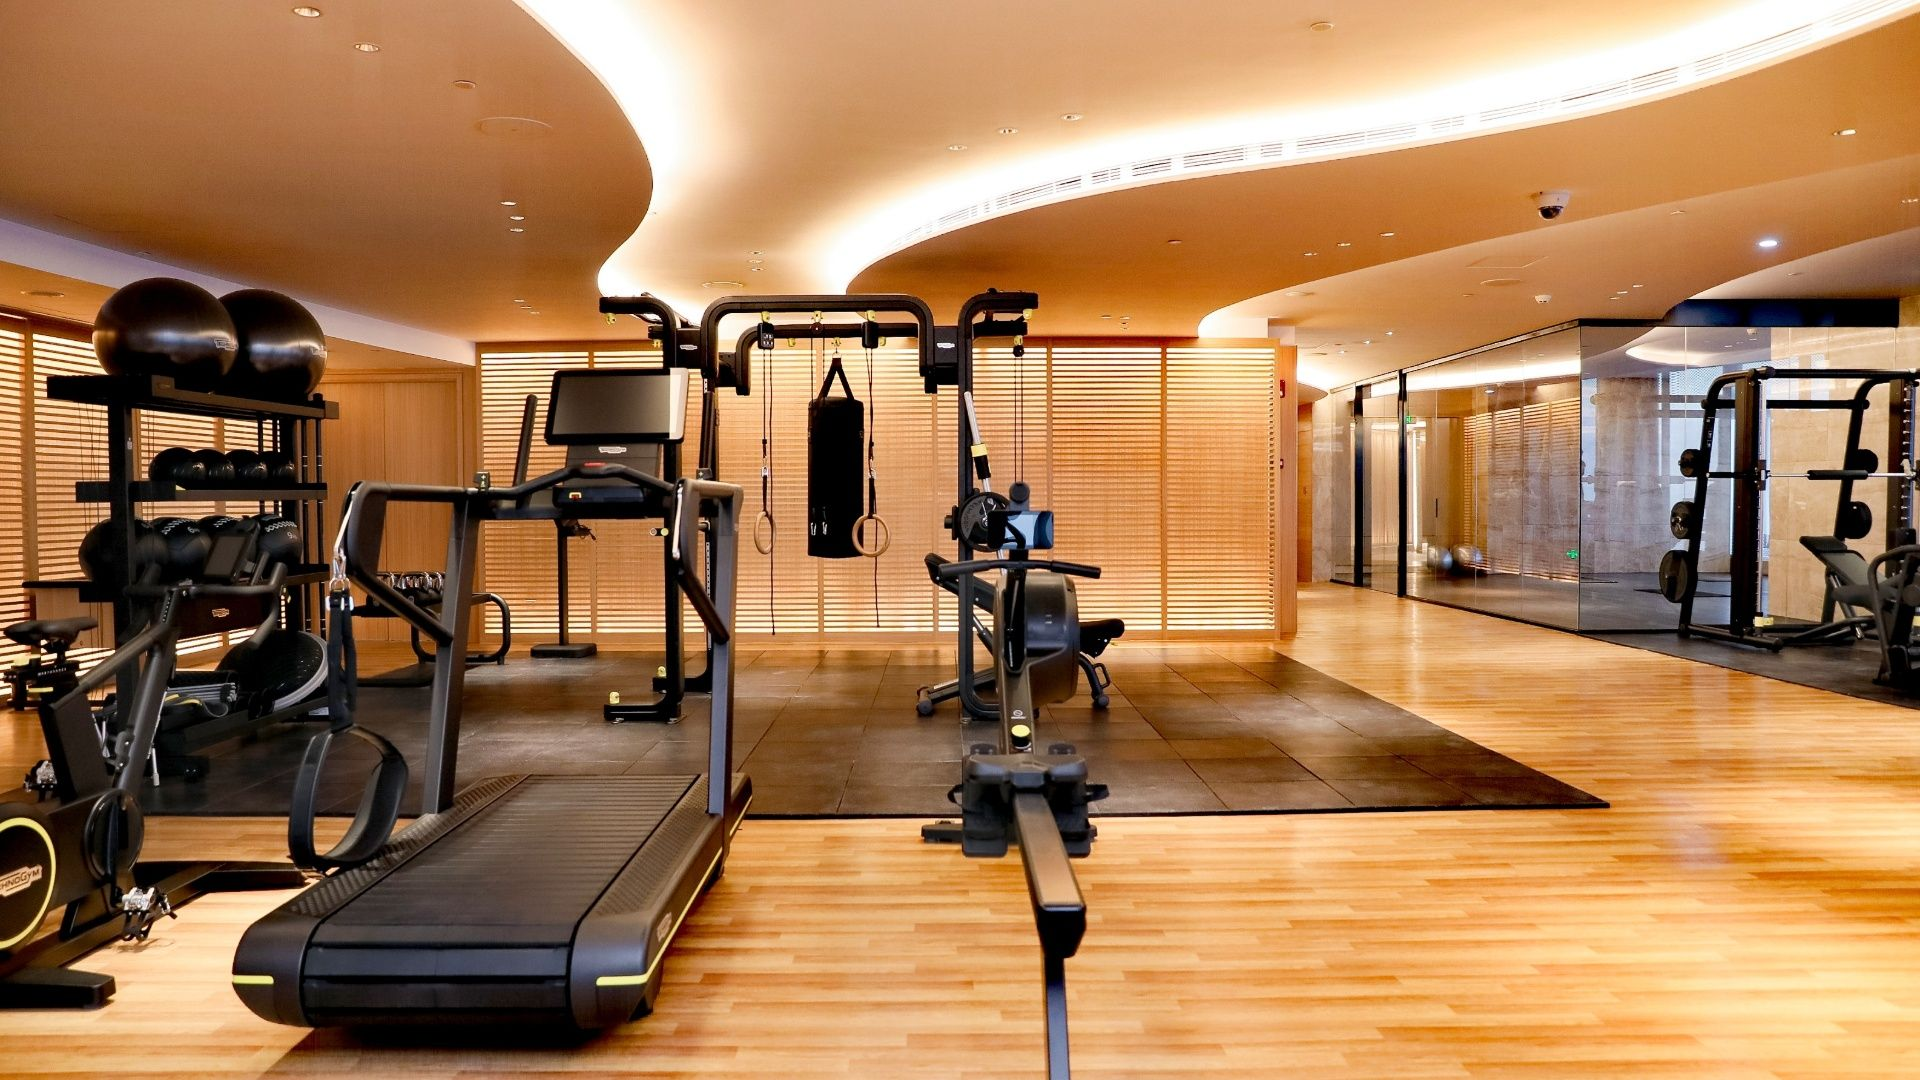 The J Hotel Shanghai Tower has a fitness center, swimming pool, yoga room and spa.